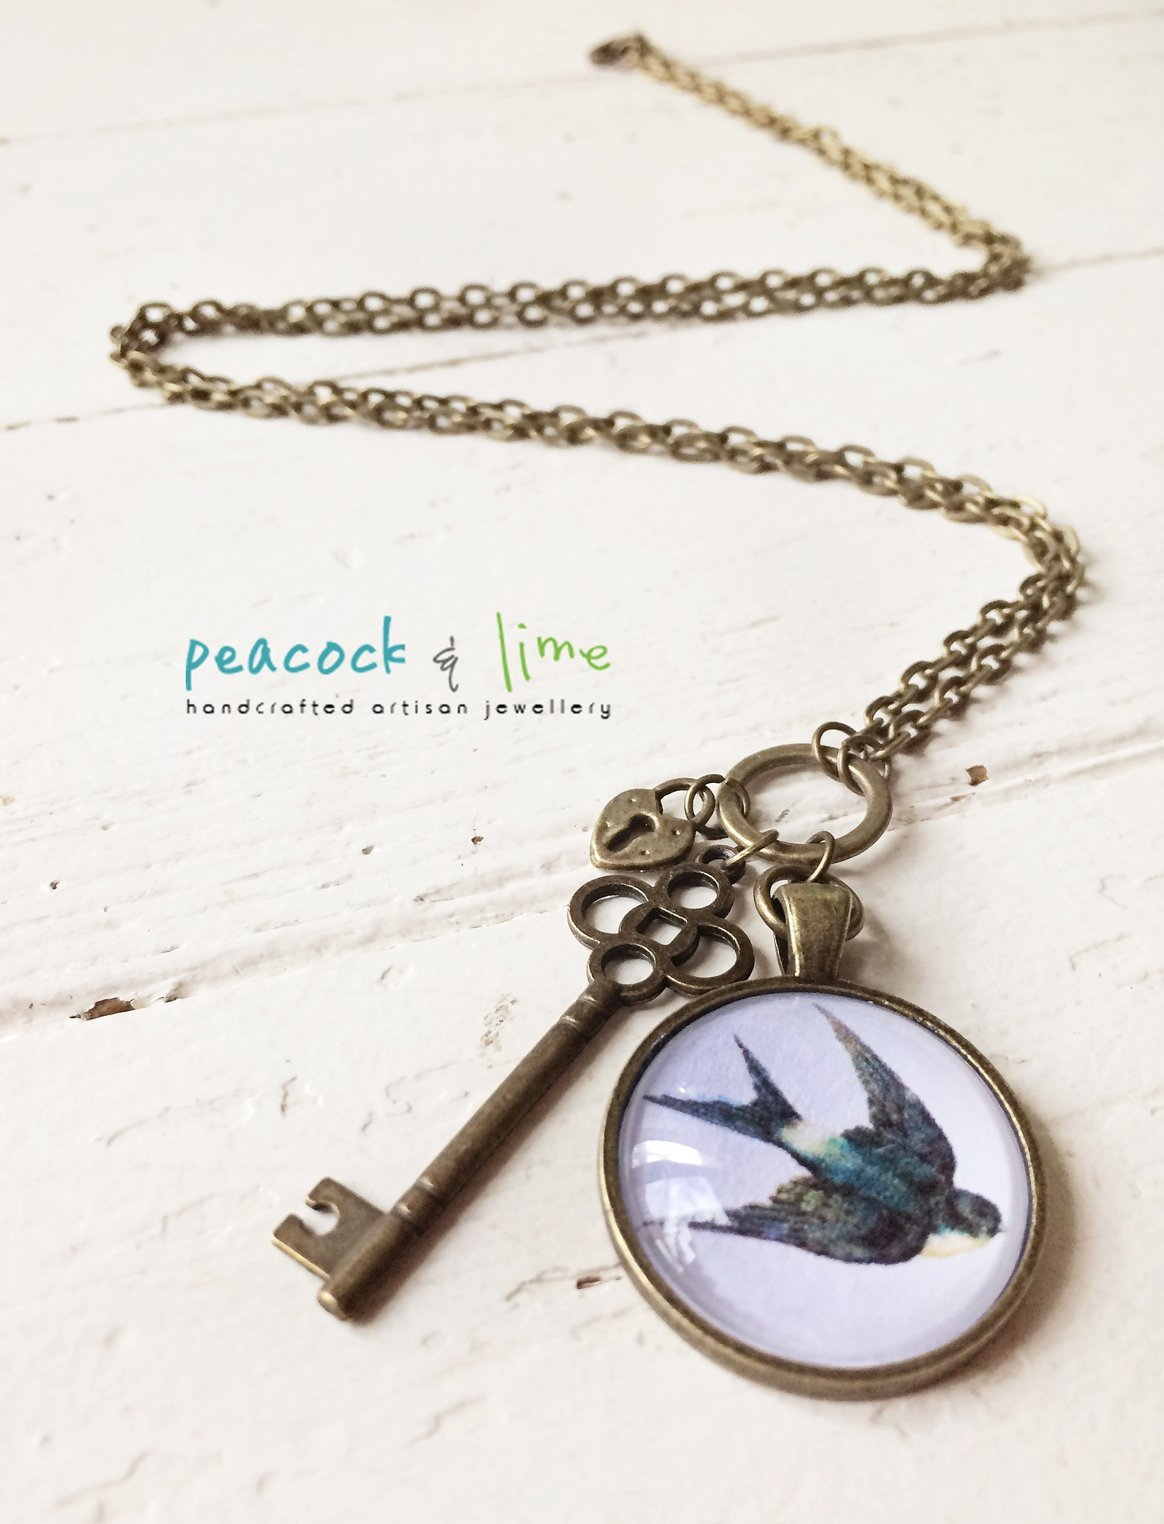 swallow bird, lock and key pendant necklace - Peacock & Lime , the original Peacock and Lime boho jewelry